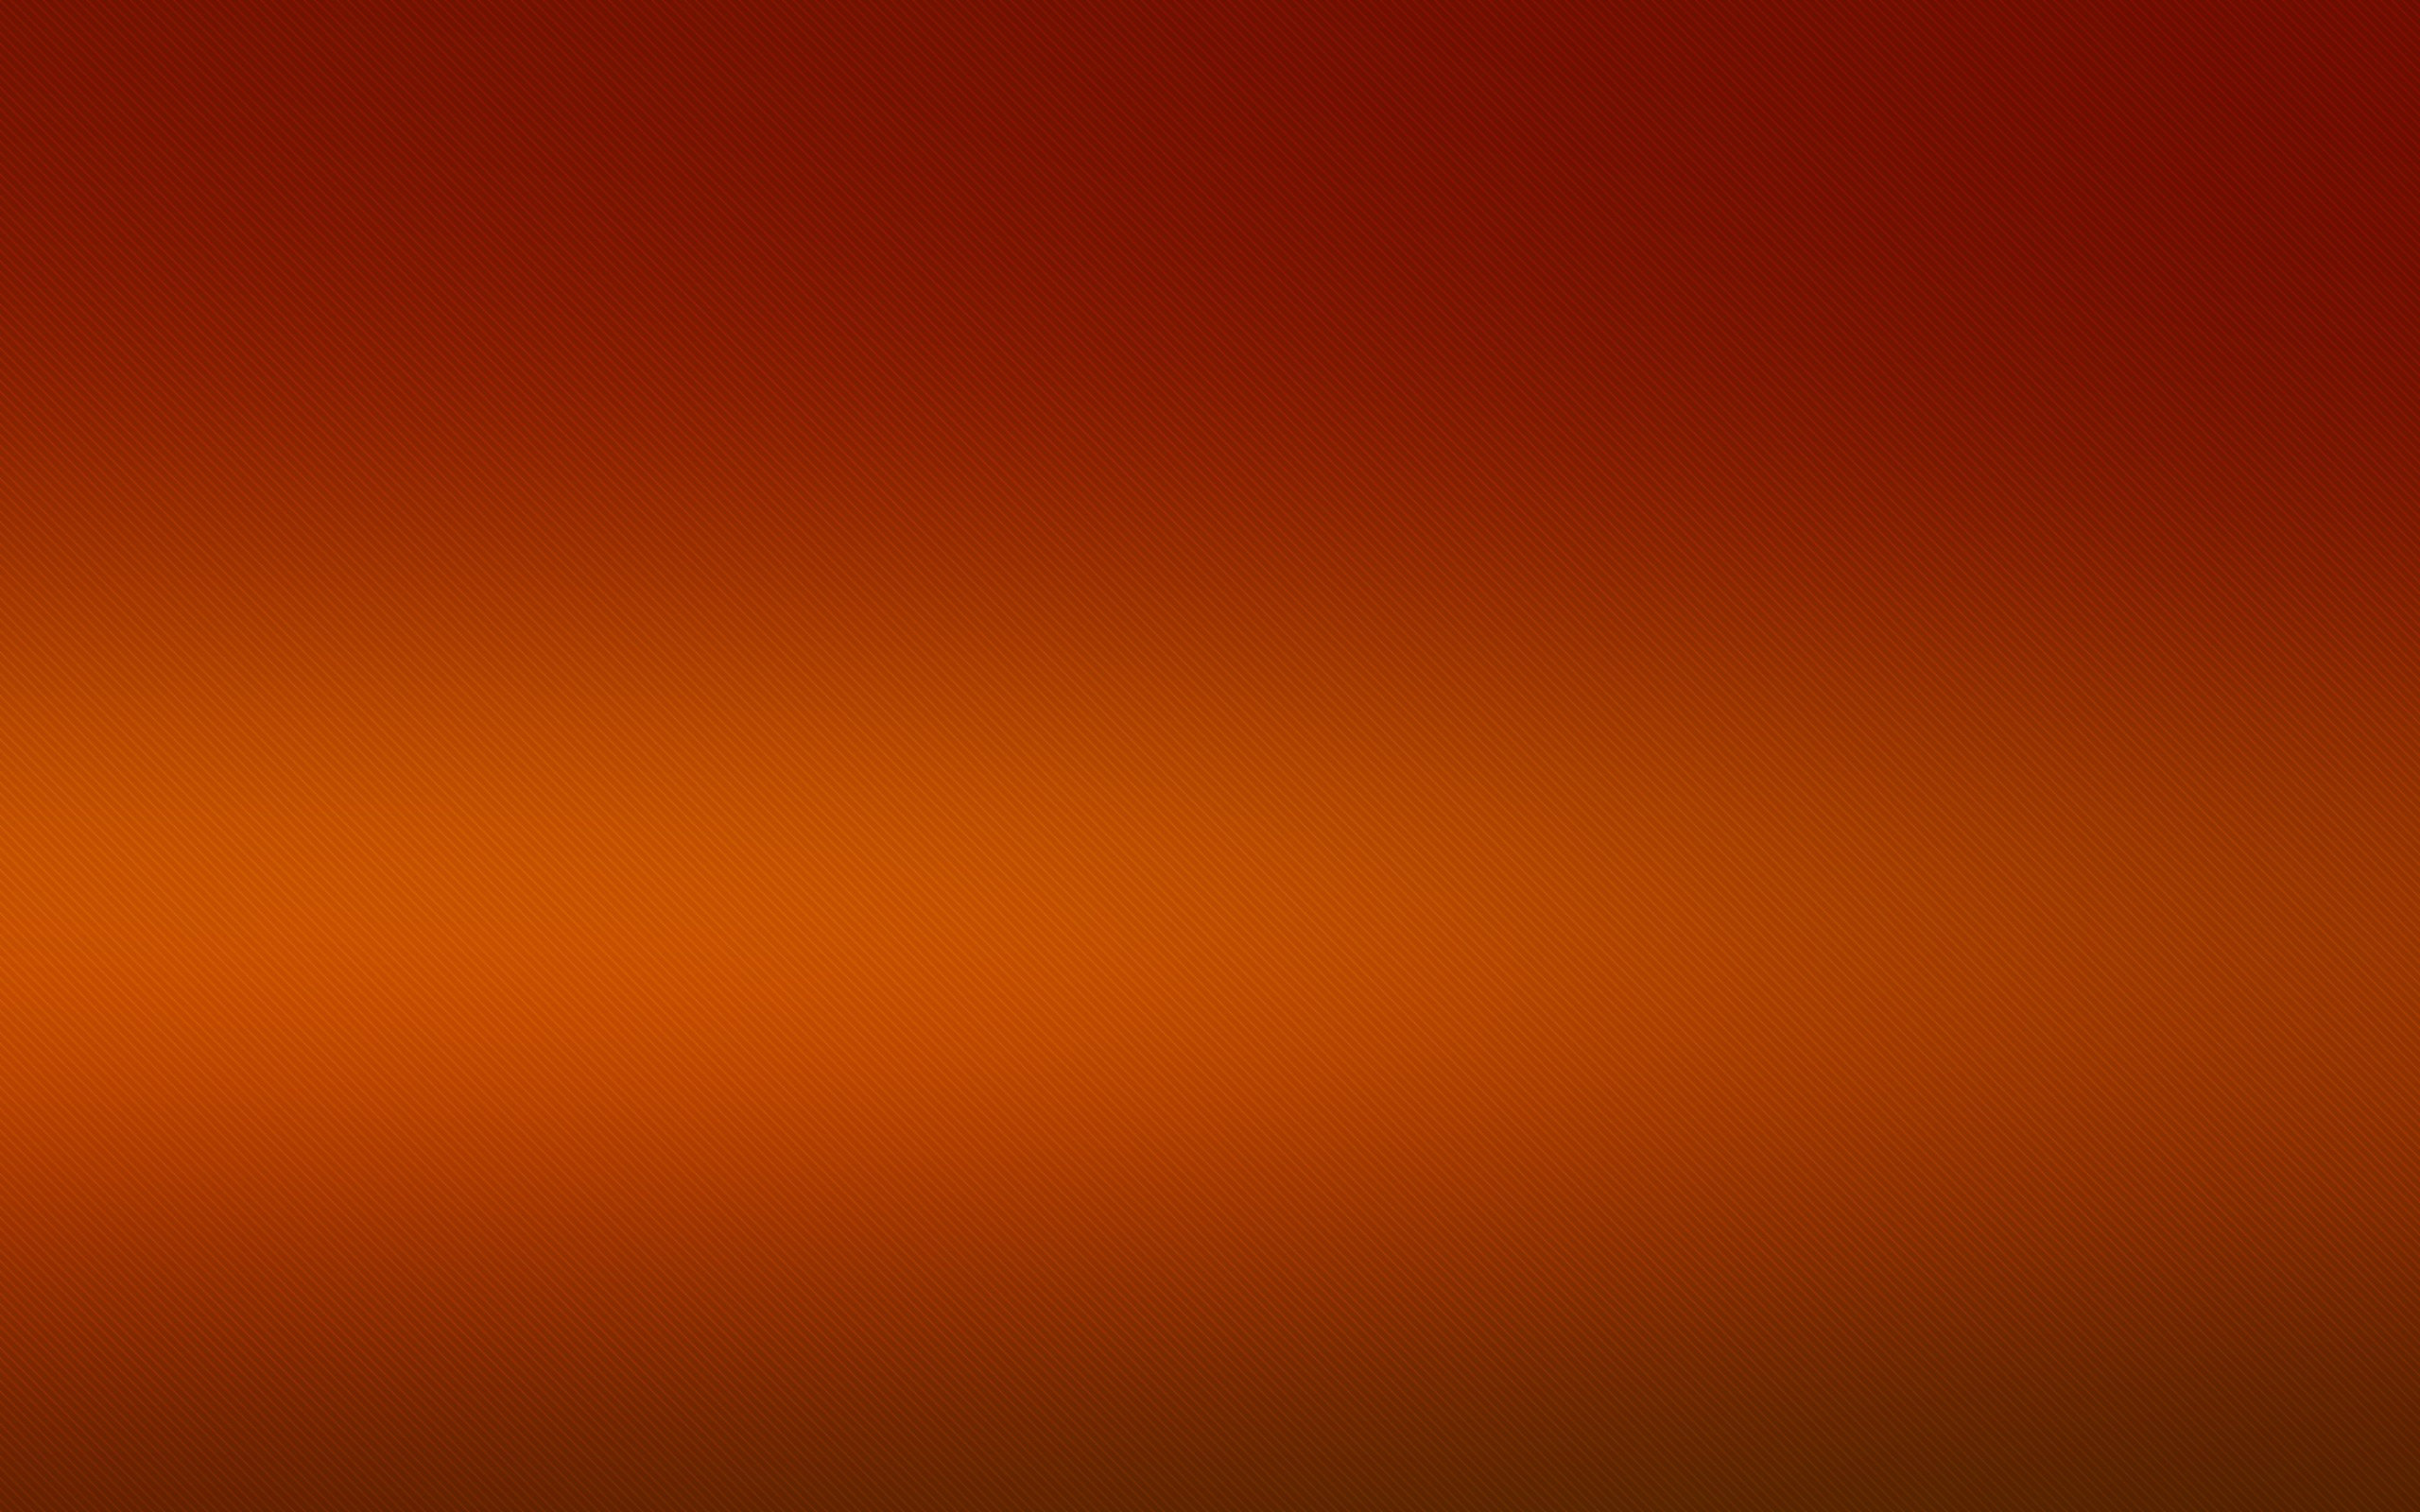 Solid Color Backgrounds wallpaper   1076023 2560x1600